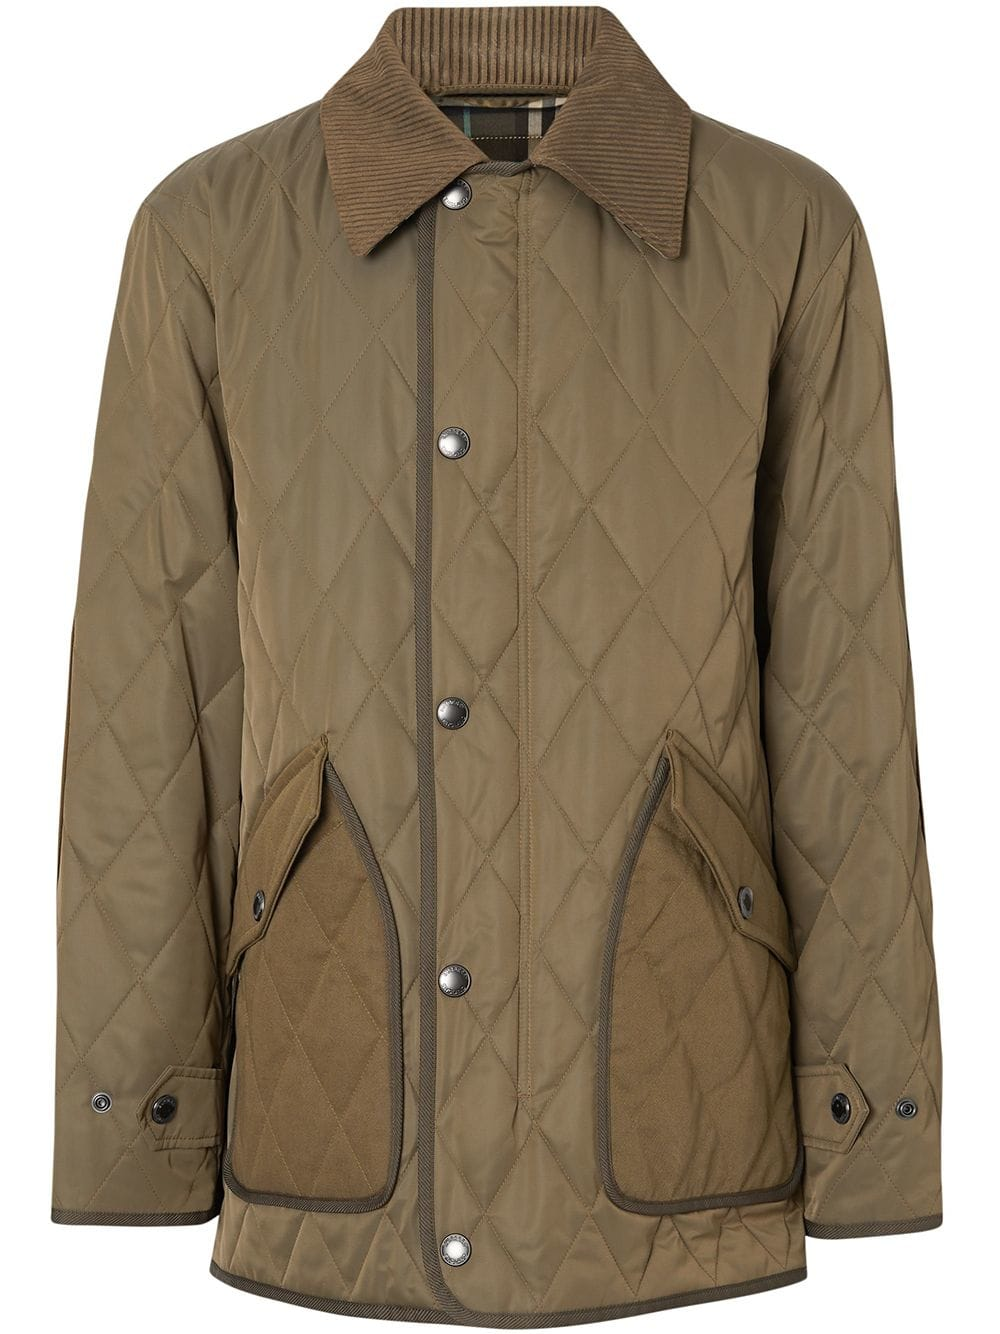 Burberry Quilted Barn Jacket Green Modesens Jackets Mens Jackets Down Jacket